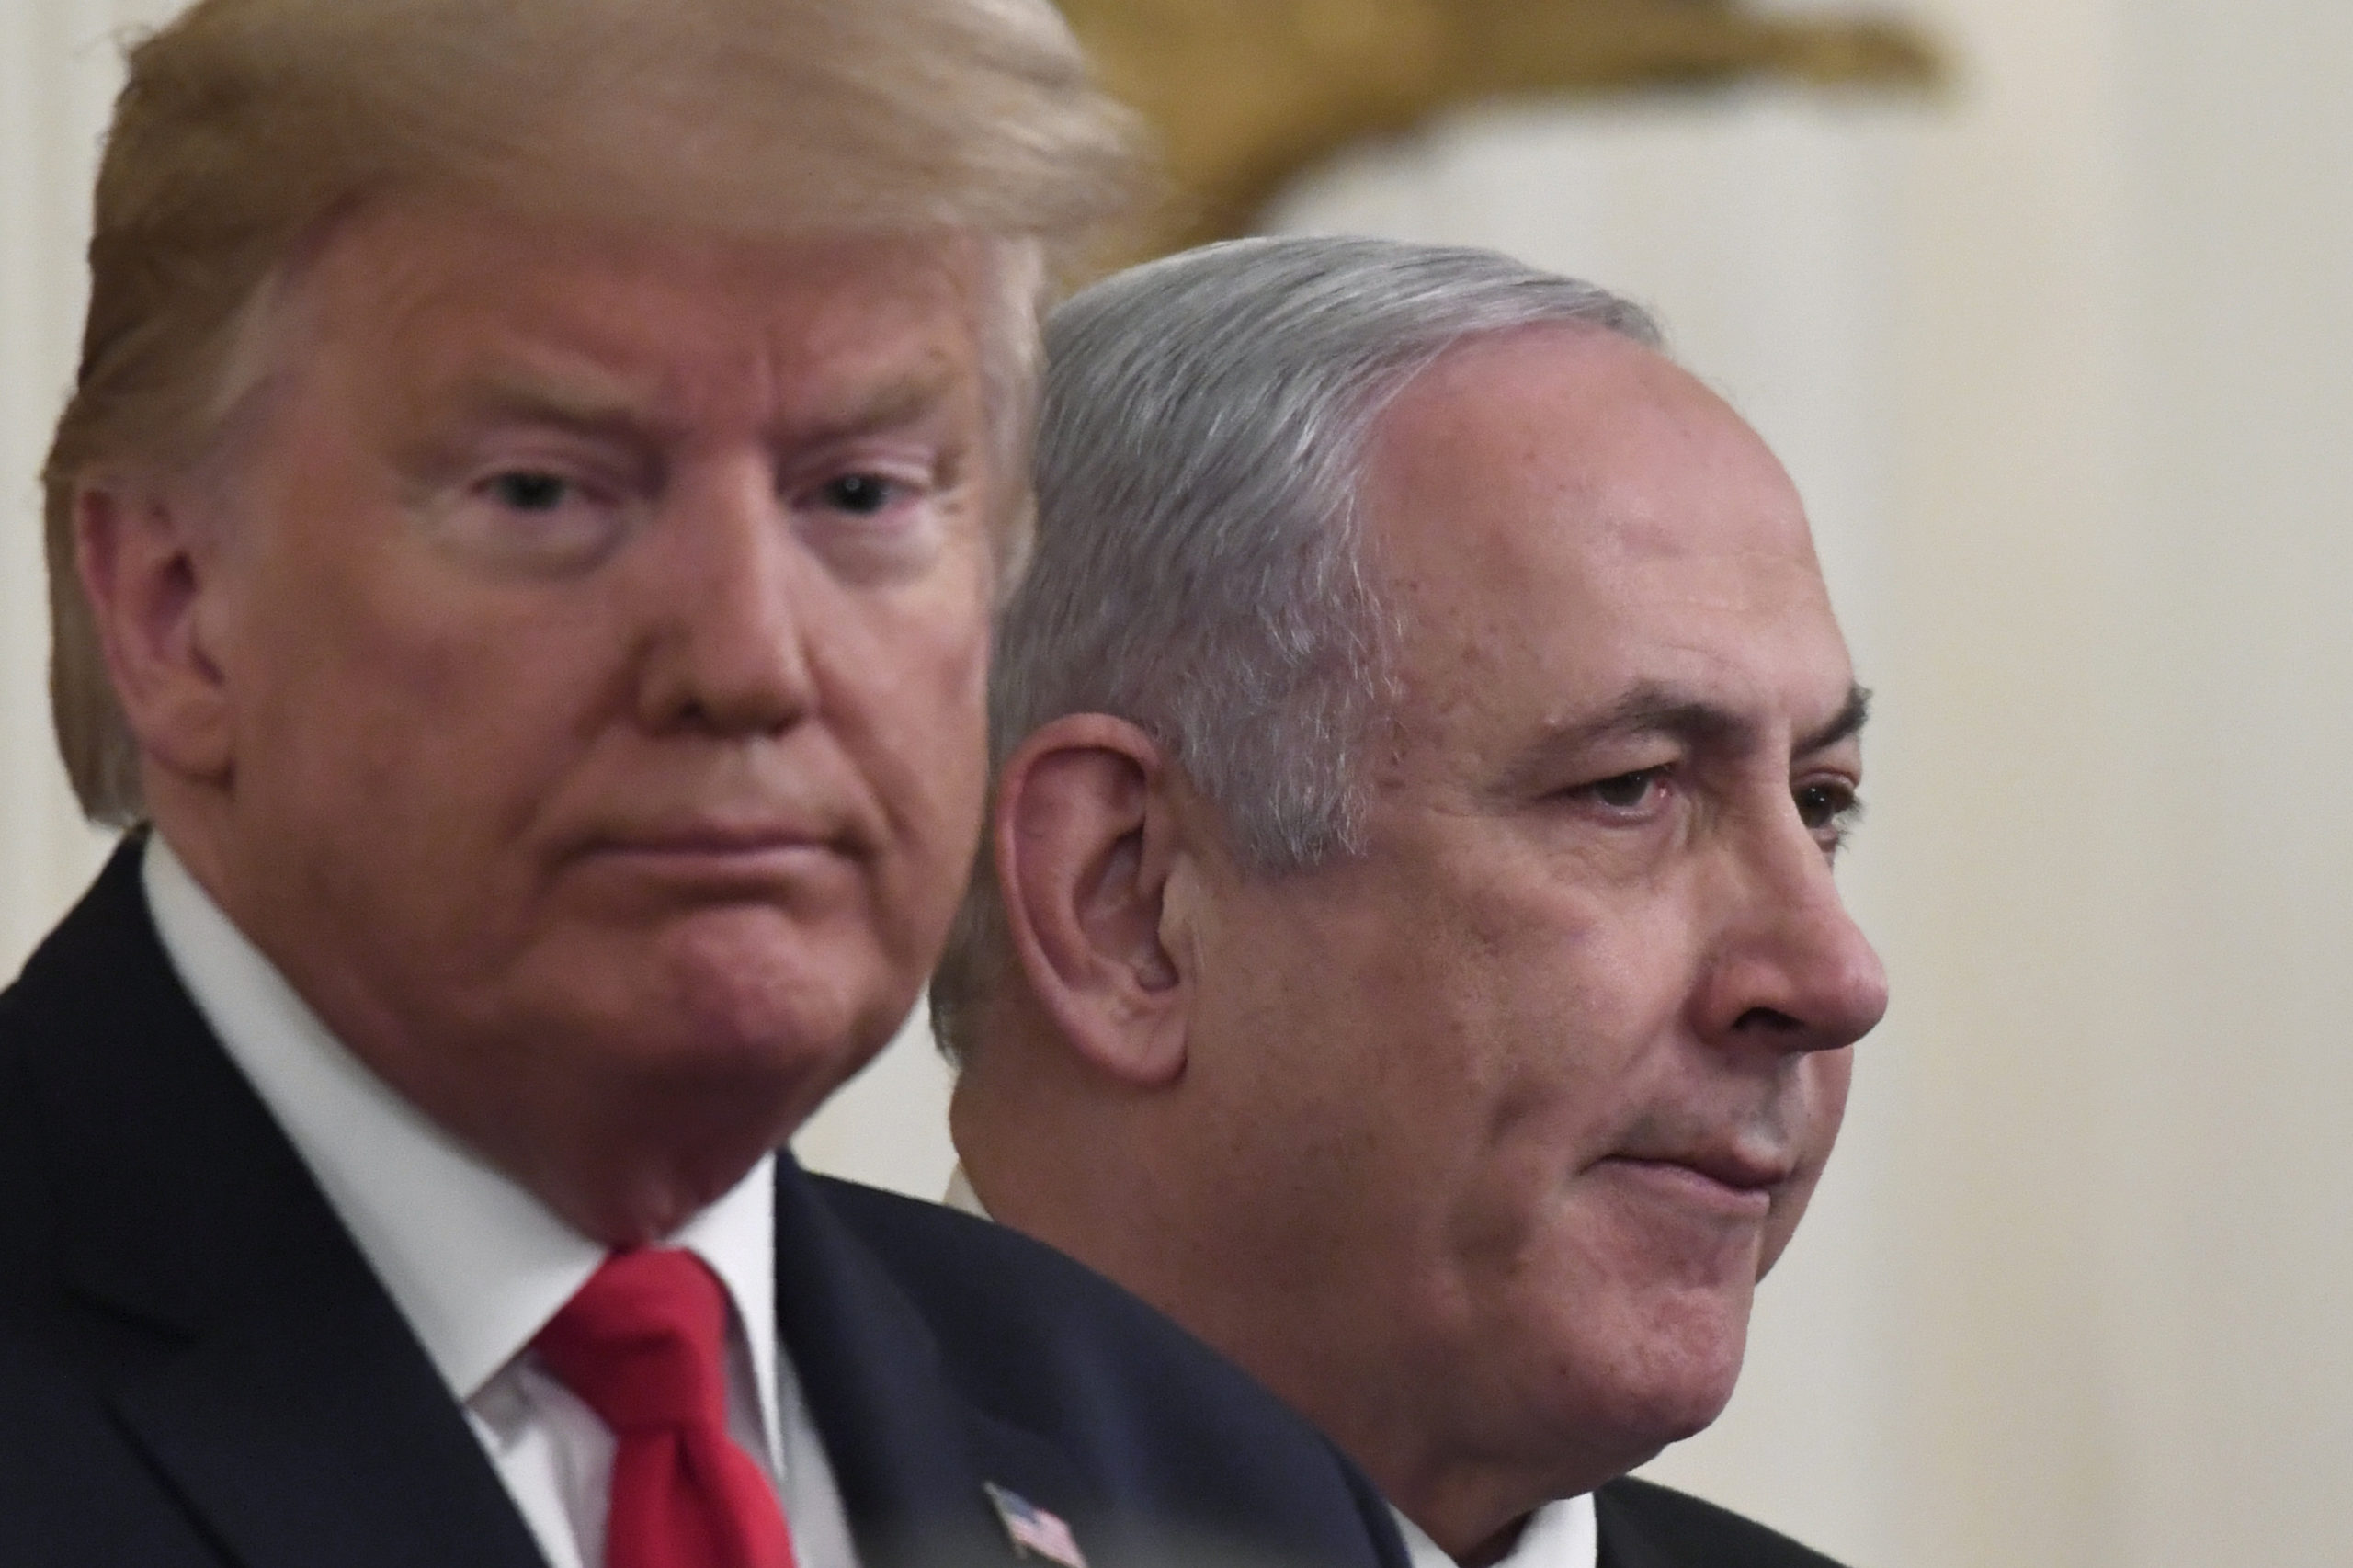 America and Israel Against the World